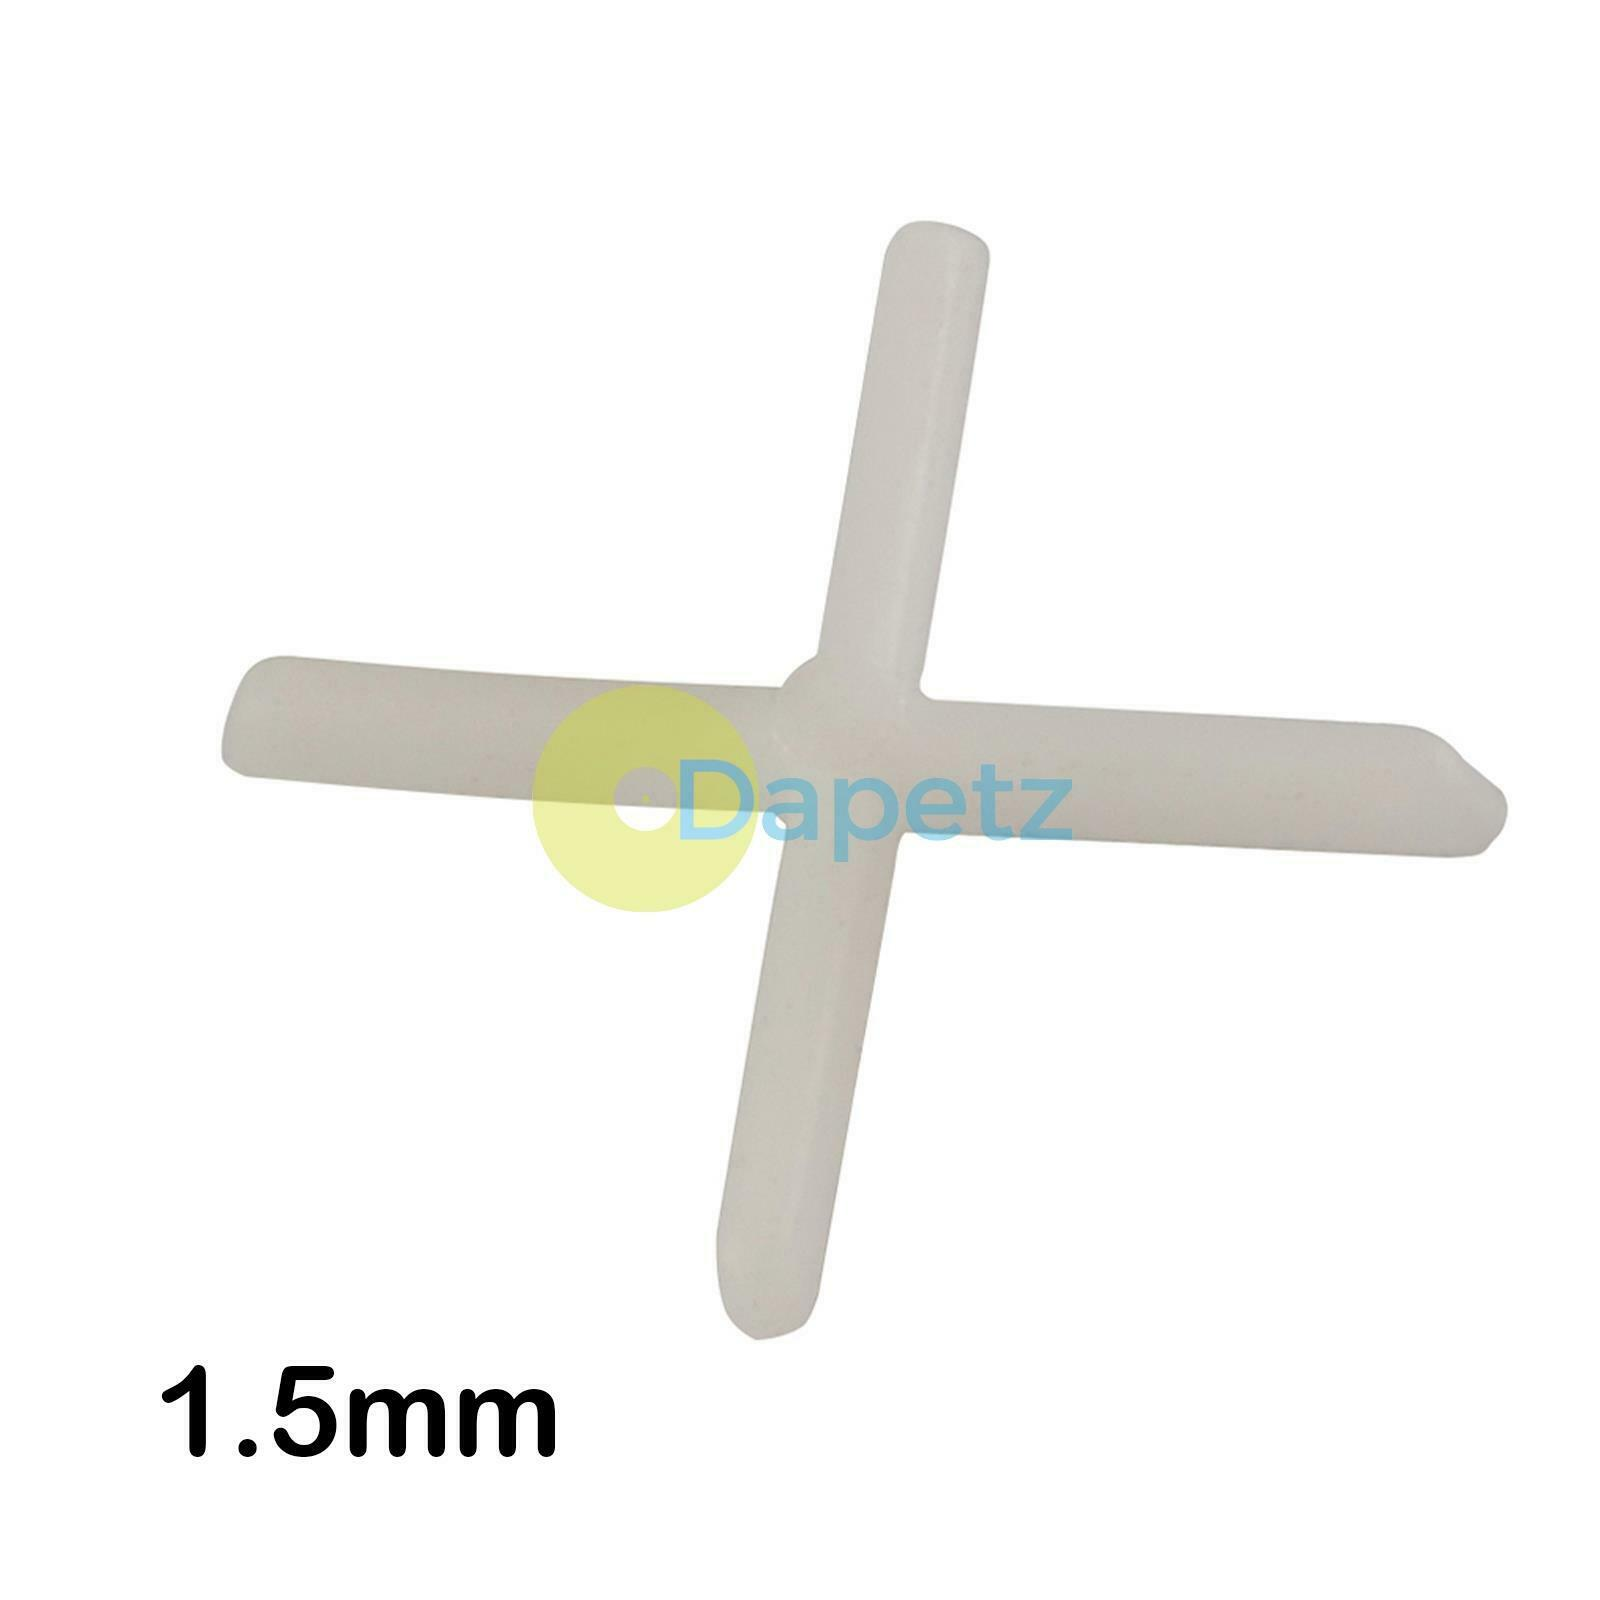 100-2000 PCs Grout Crosses 5 mm//20 mm for Patios Plates Floor Plates